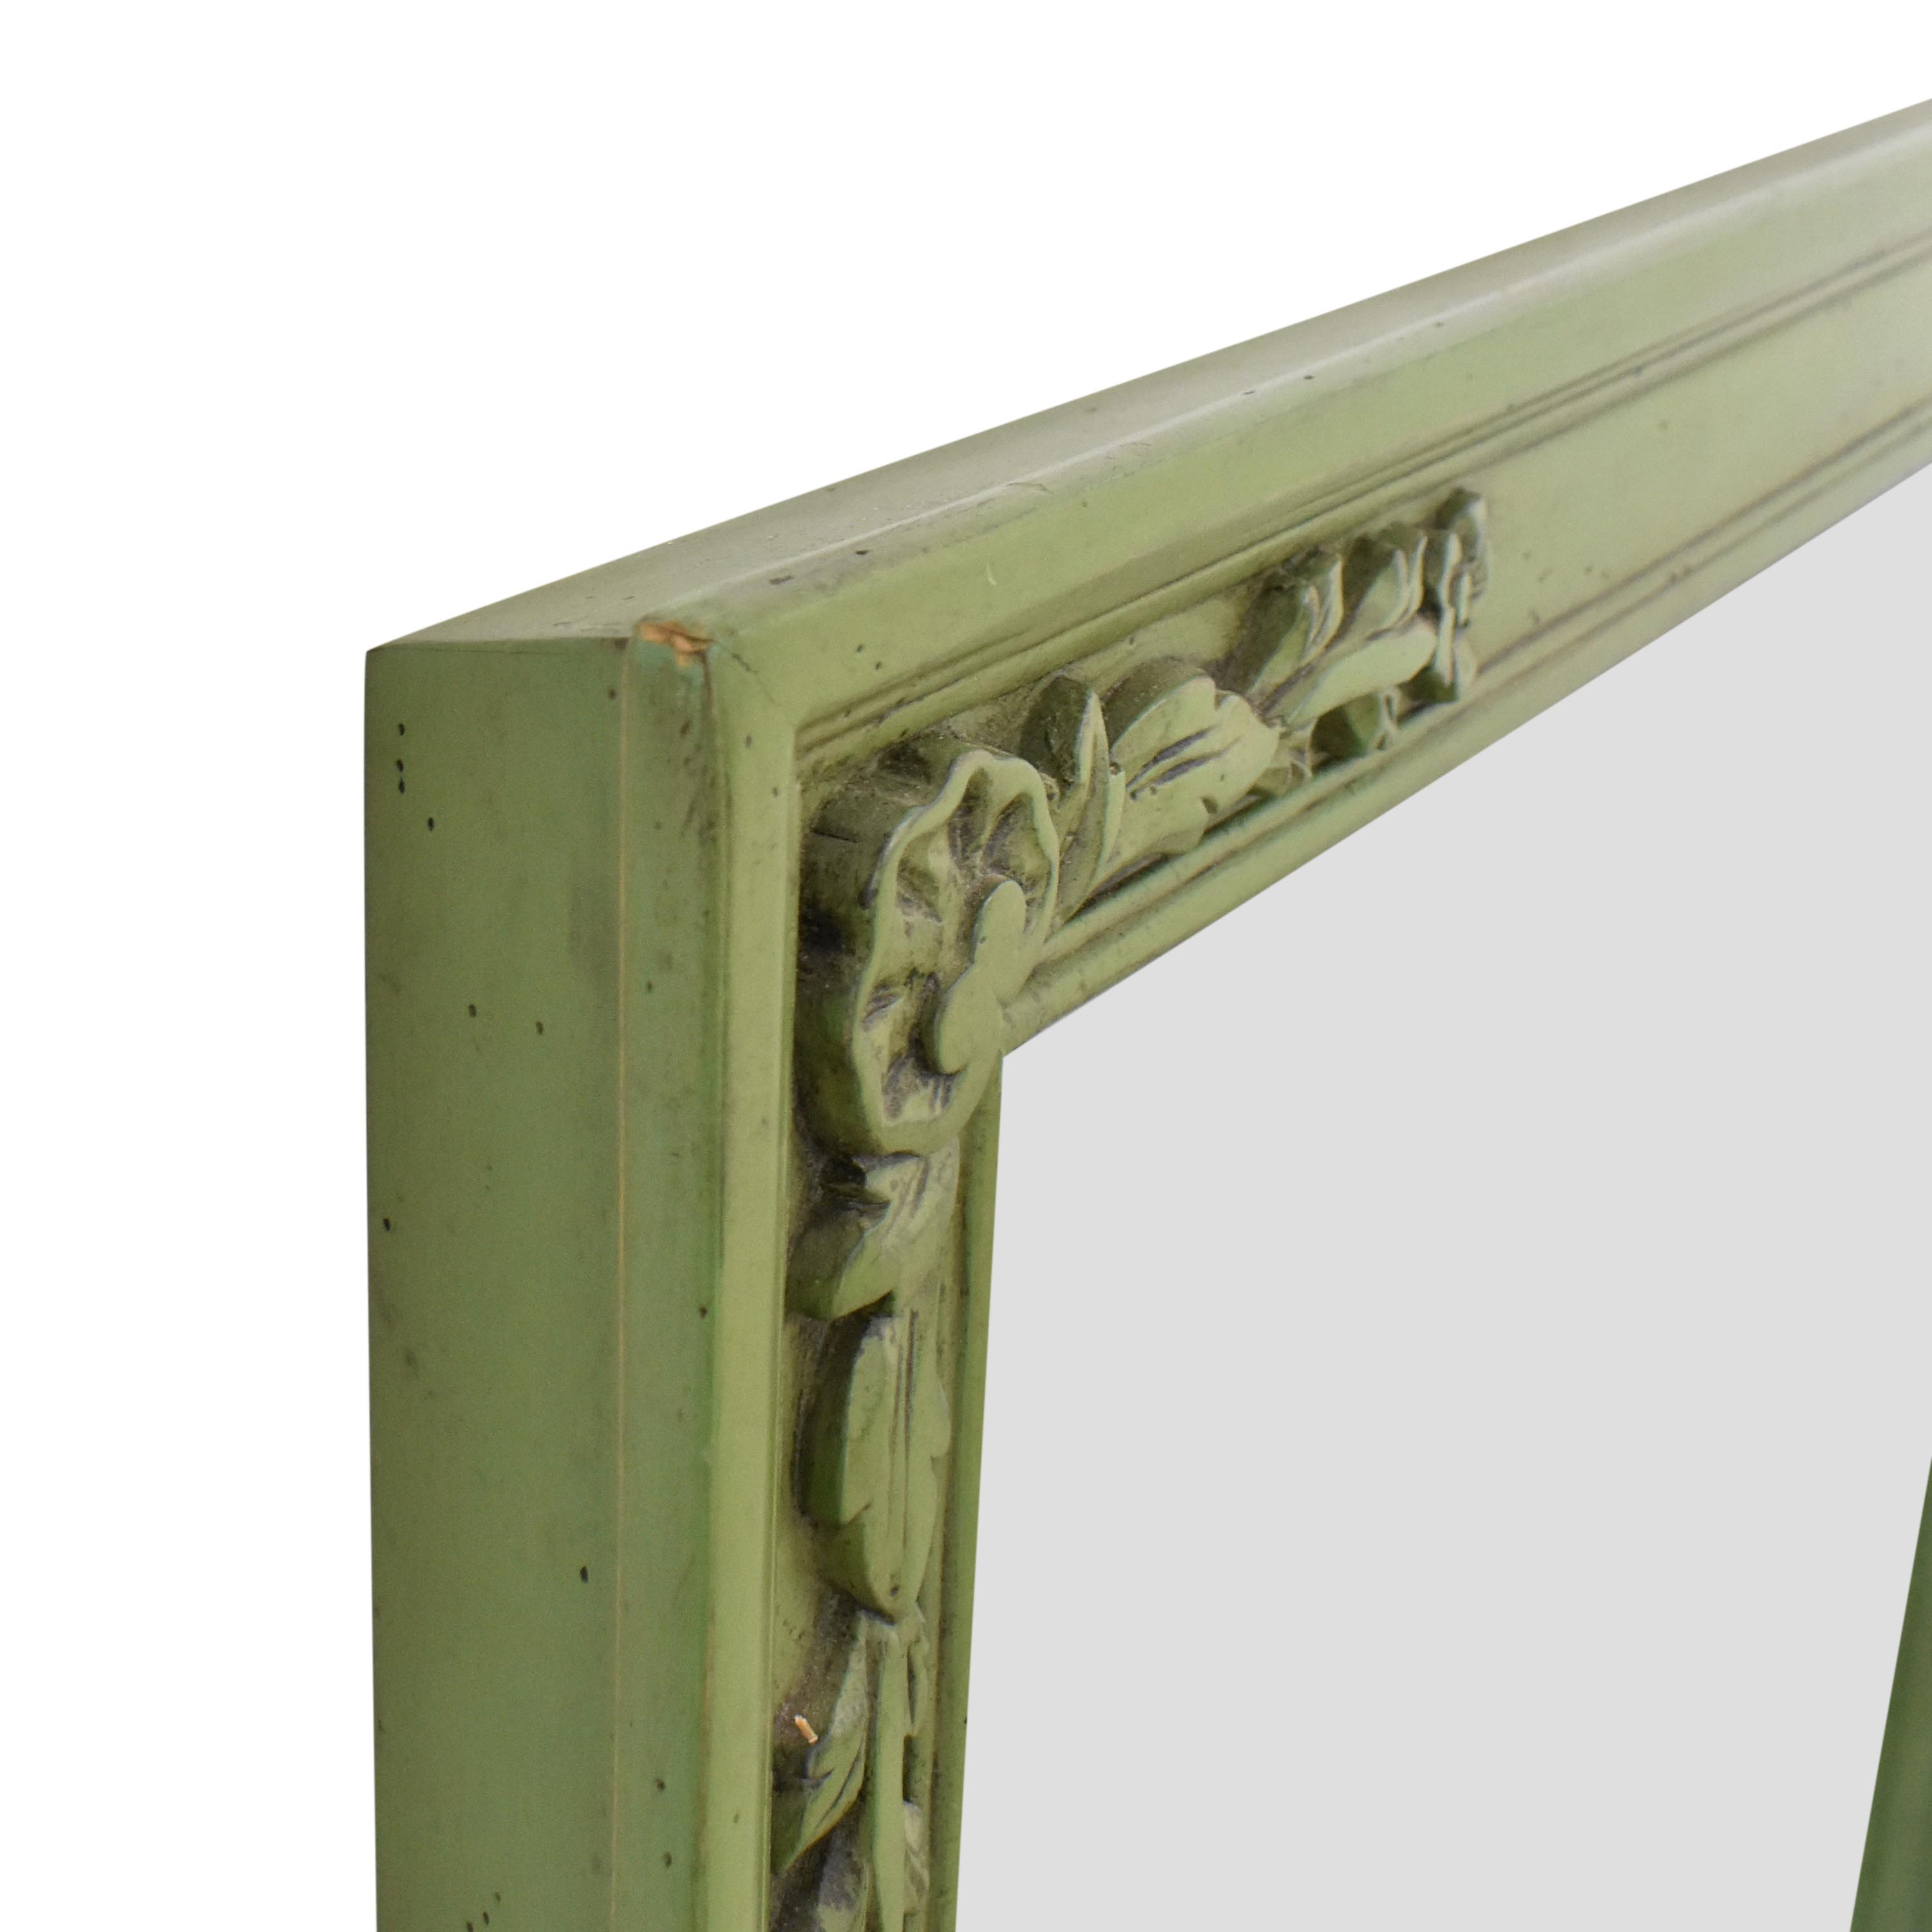 Guy Chaddock & Co. Guy Chaddock & Co. Framed Mirror with Floral Carving for sale